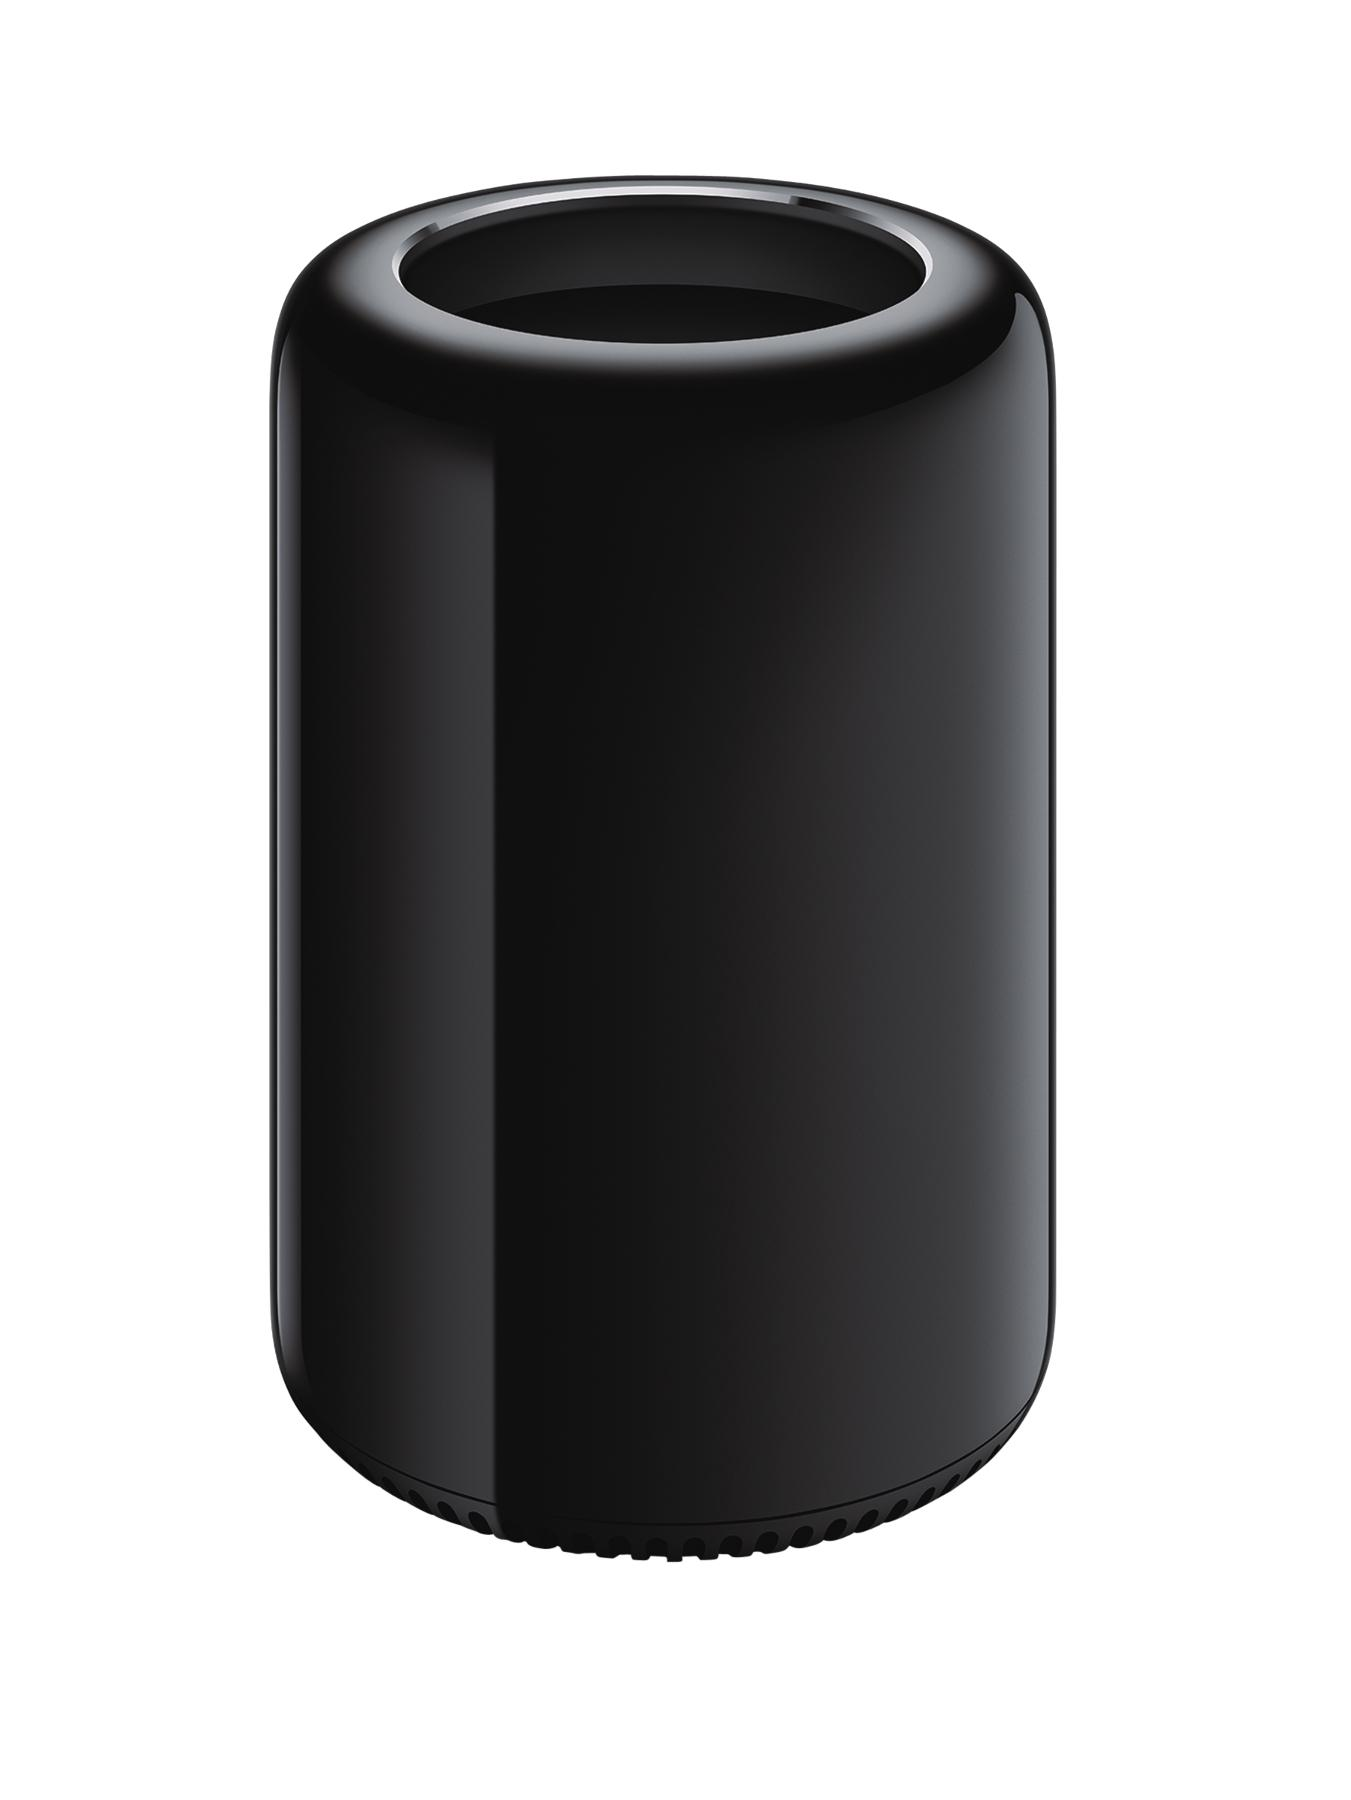 Mac Pro Quad-Core Intel Xeon E5 Processor 12GB RAM 256GB Flash